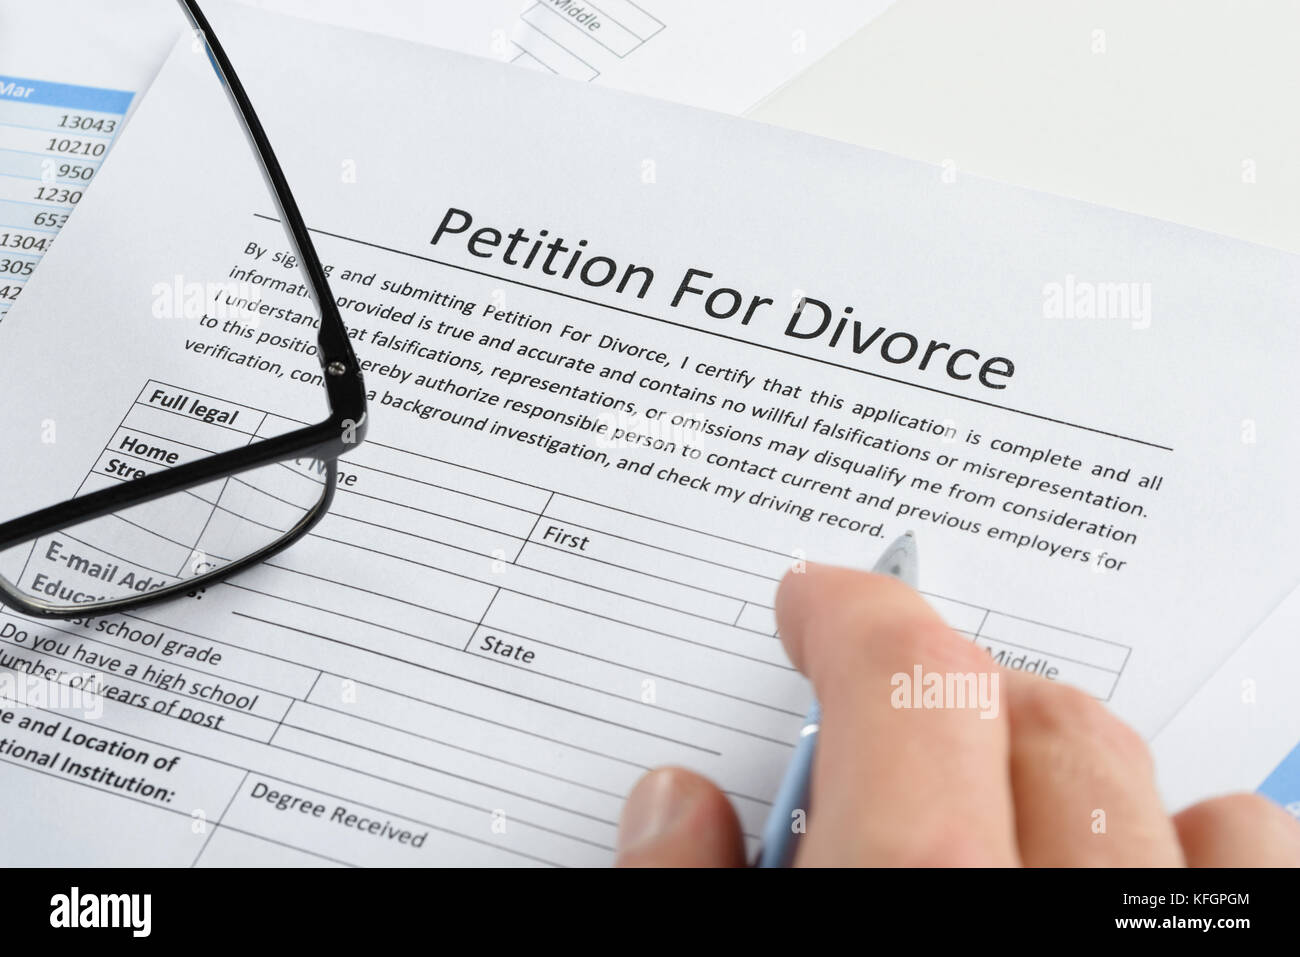 Close-up Of Hand With Pen On Petition For Divorce Paper - Stock Image